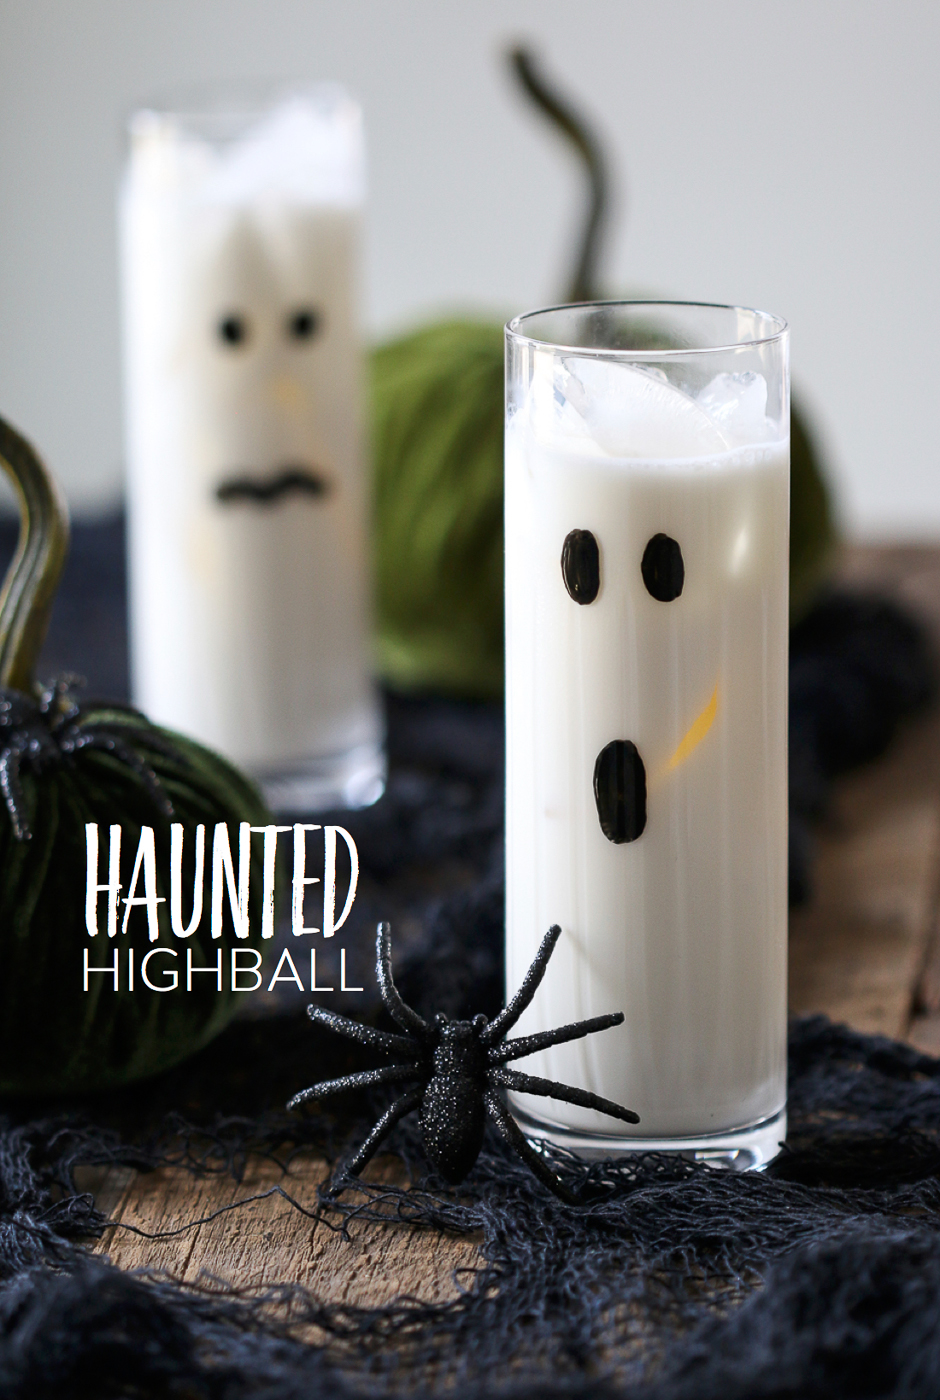 Haunted Highball